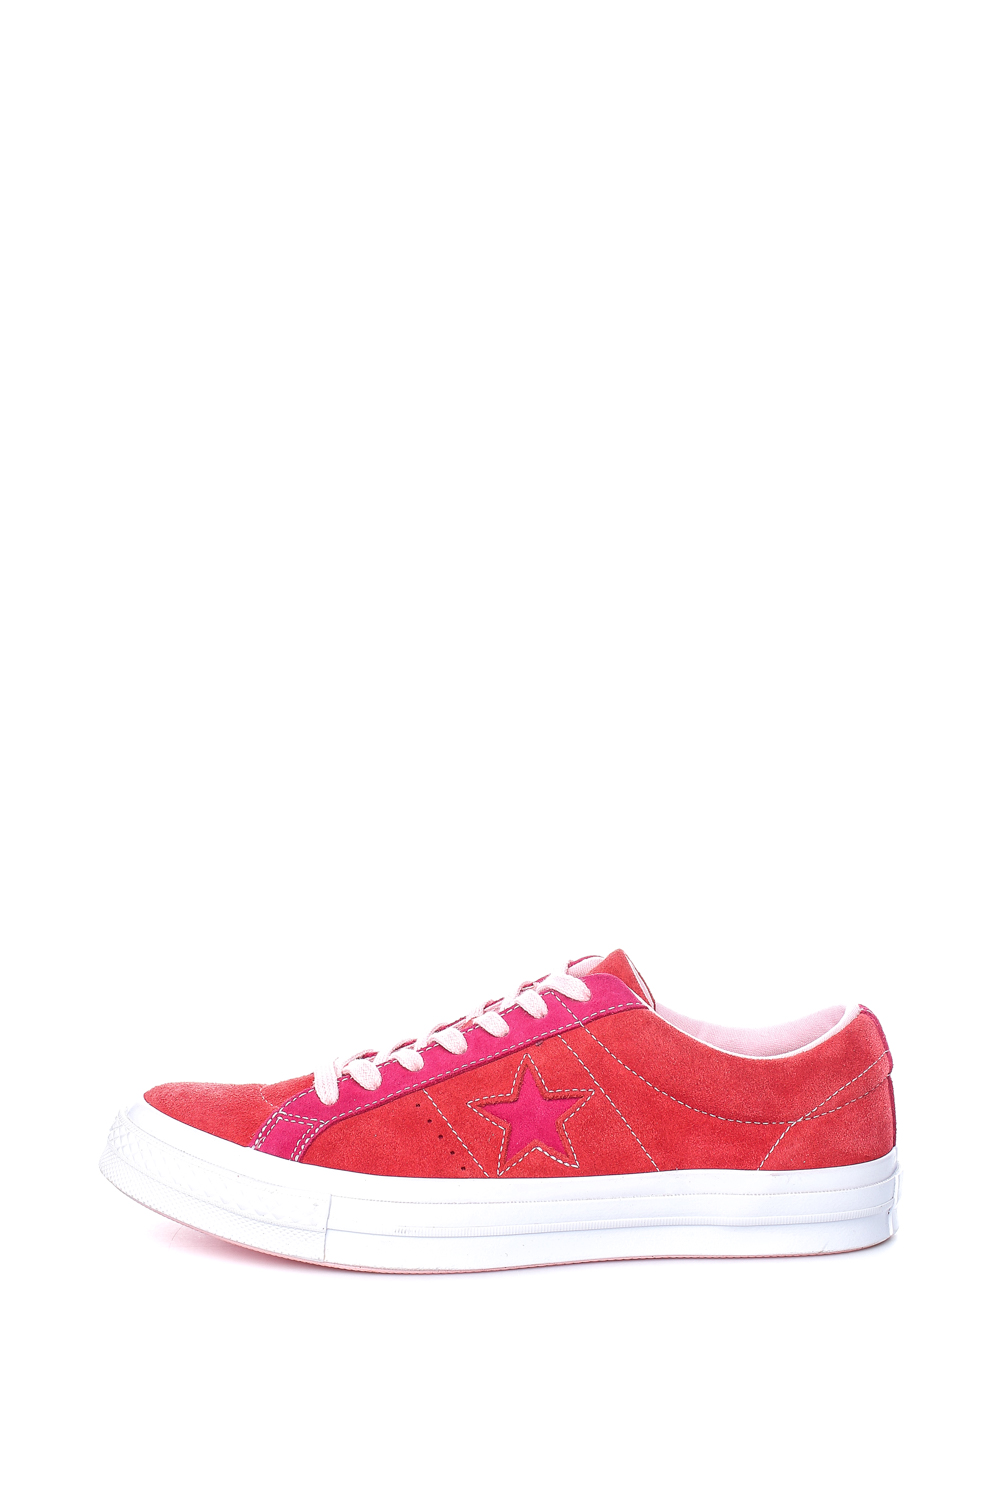 -40% Collective Online CONVERSE – Ανδρικά σουέτ sneakers CONVERSE ONE STAR  κόκκινα 021ea562c15